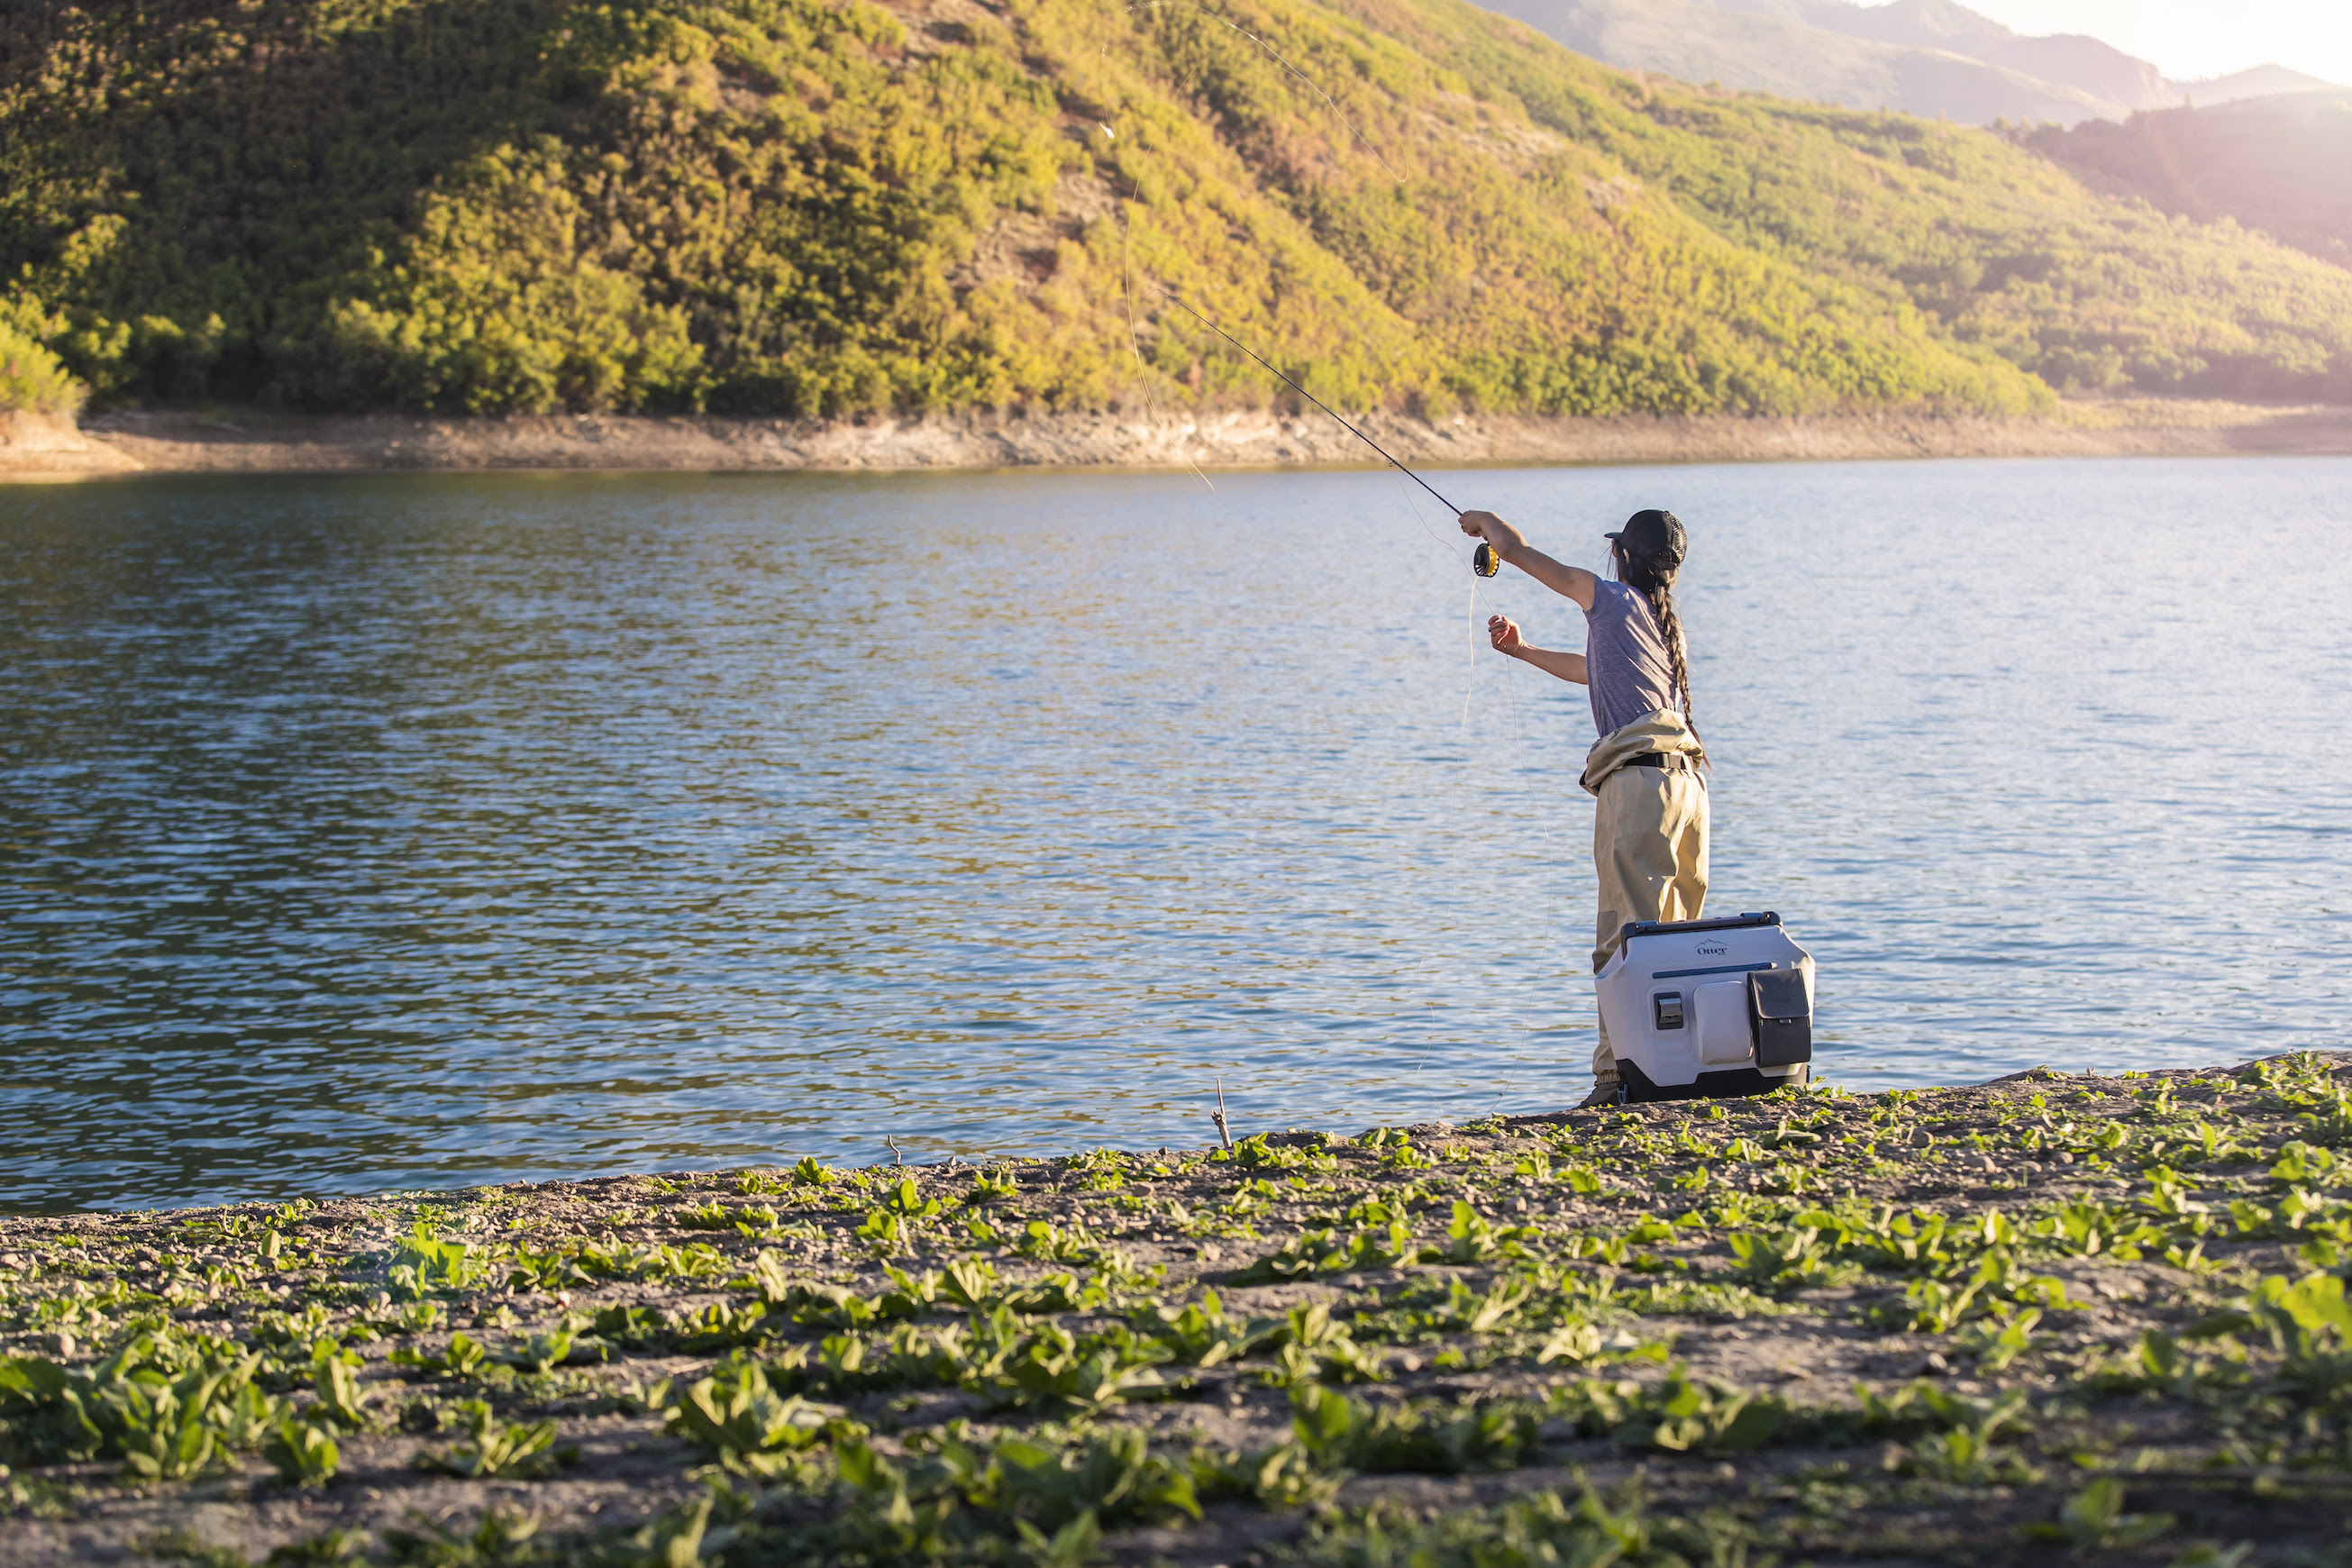 female angler on shore of lake with OtterBox trooper cooler